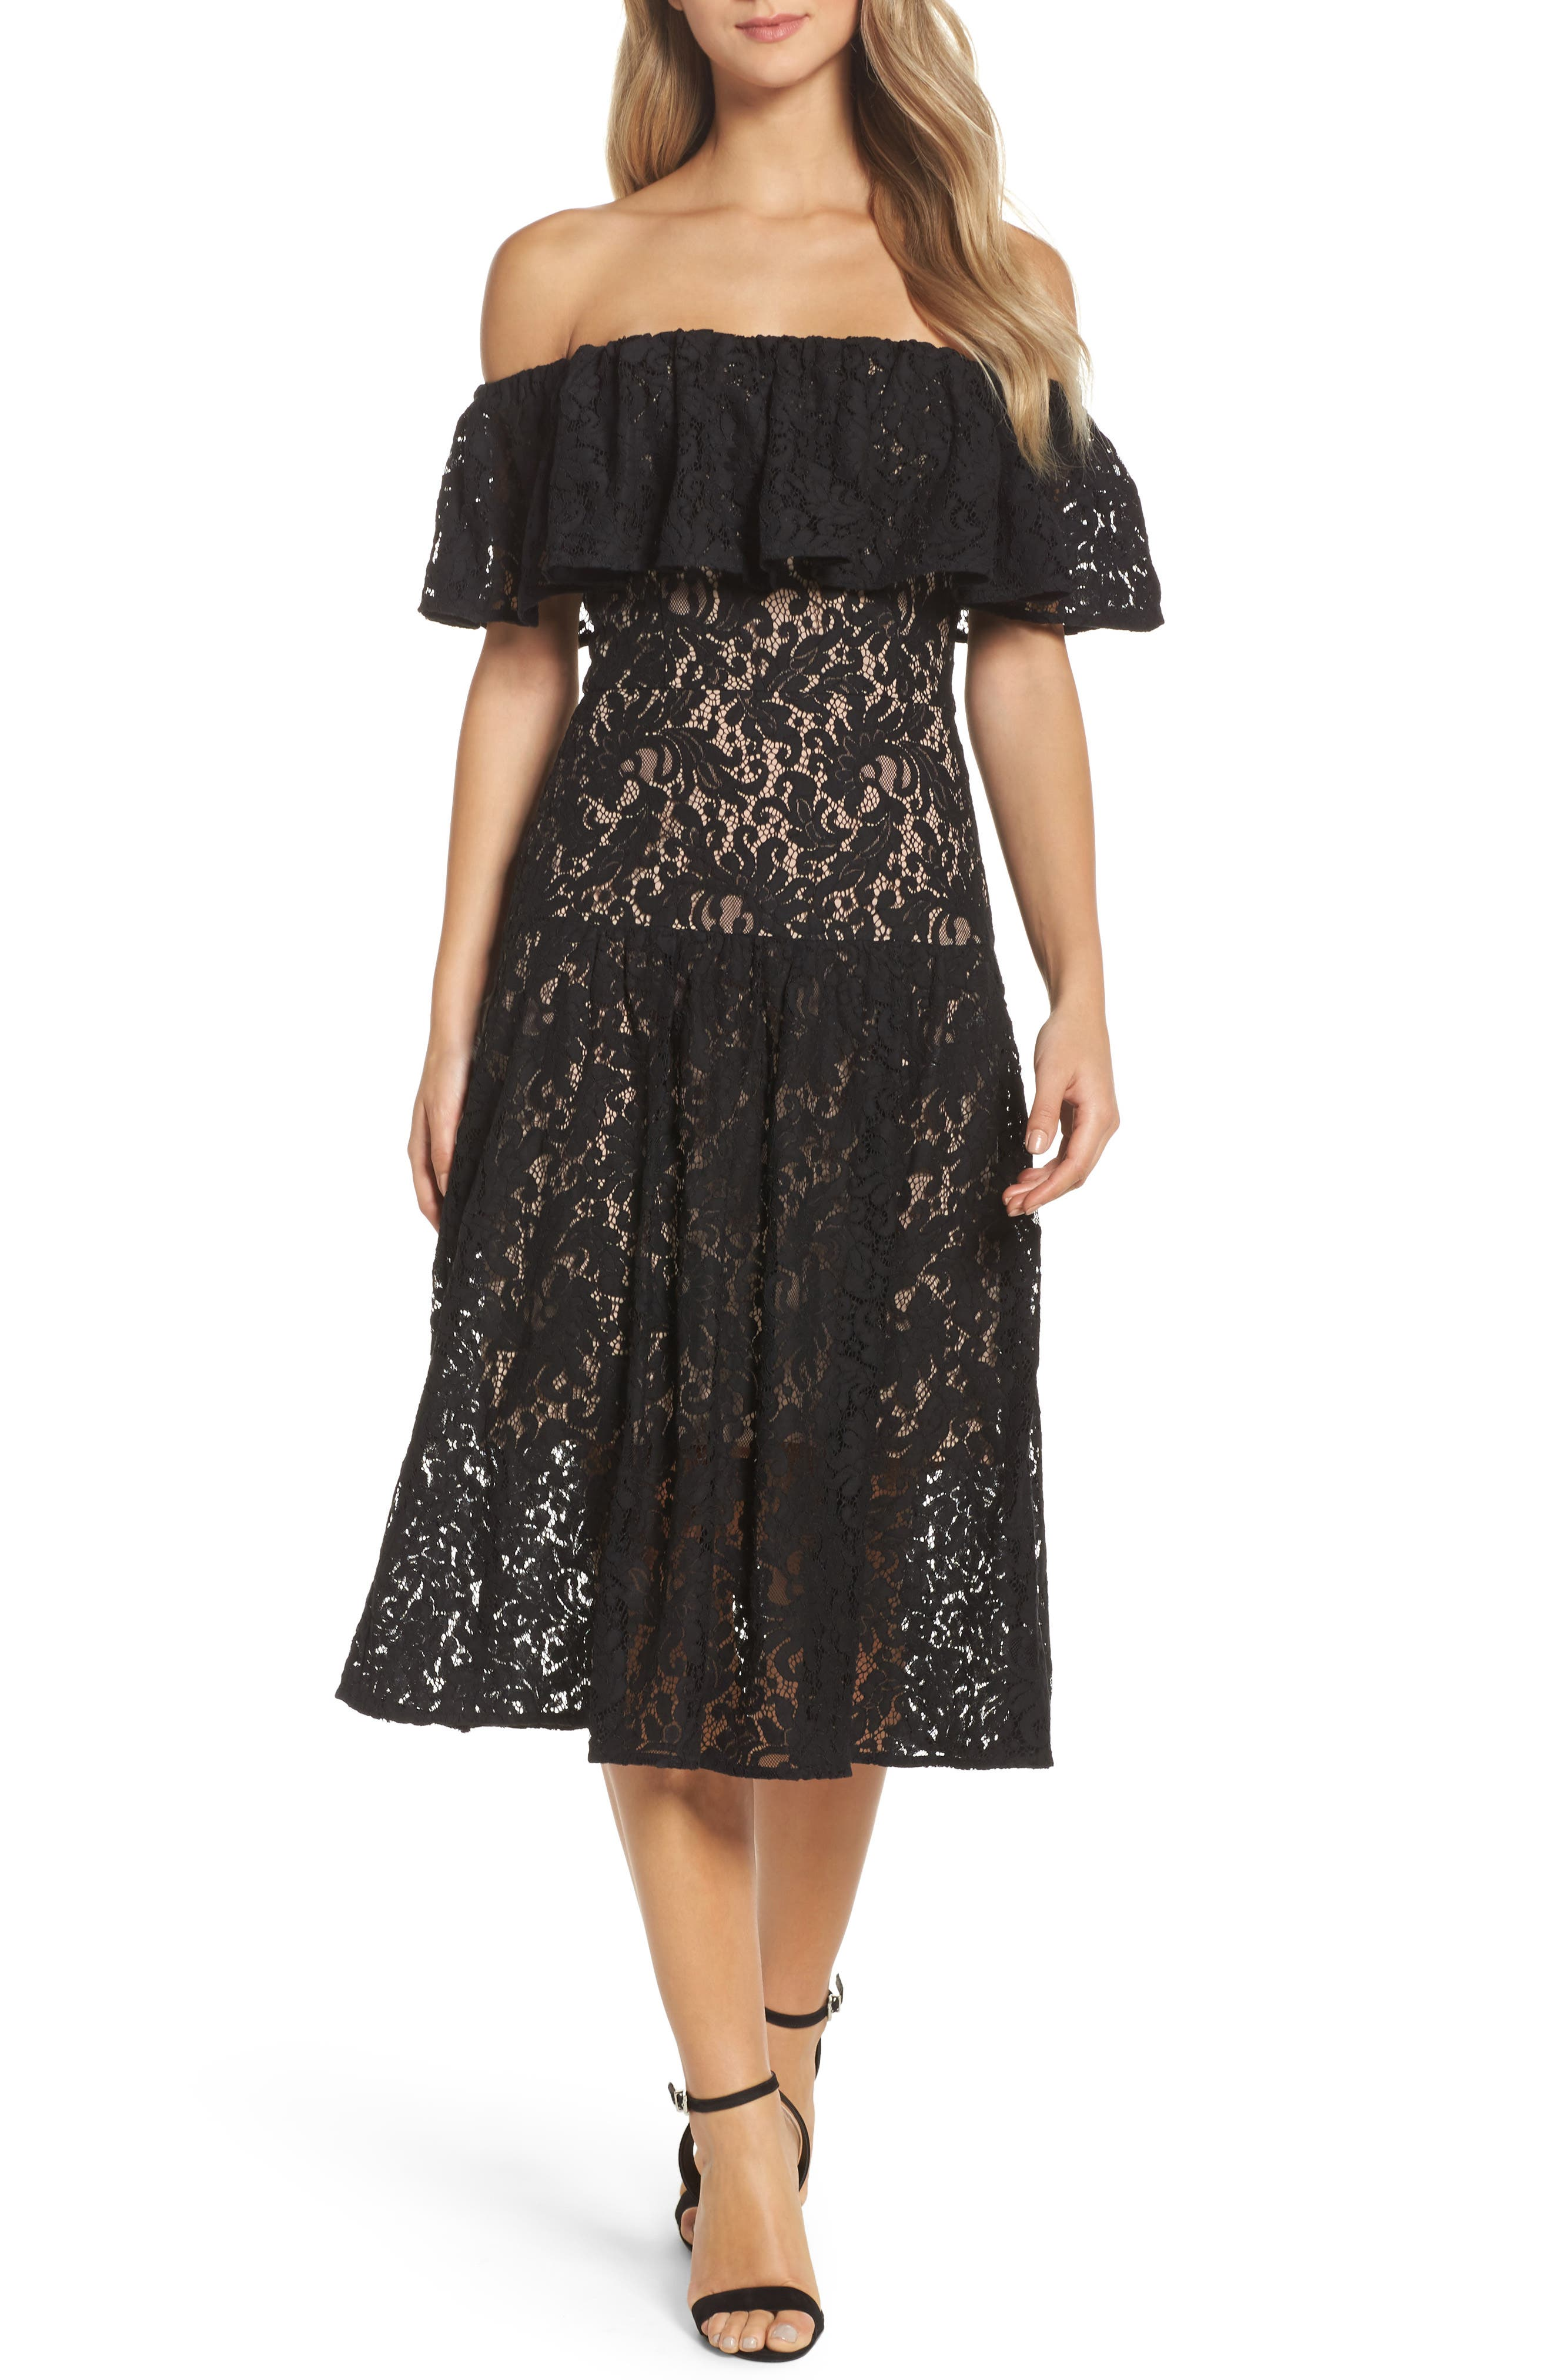 Sunday Silence Lace Off the Shoulder Dress,                         Main,                         color, 001